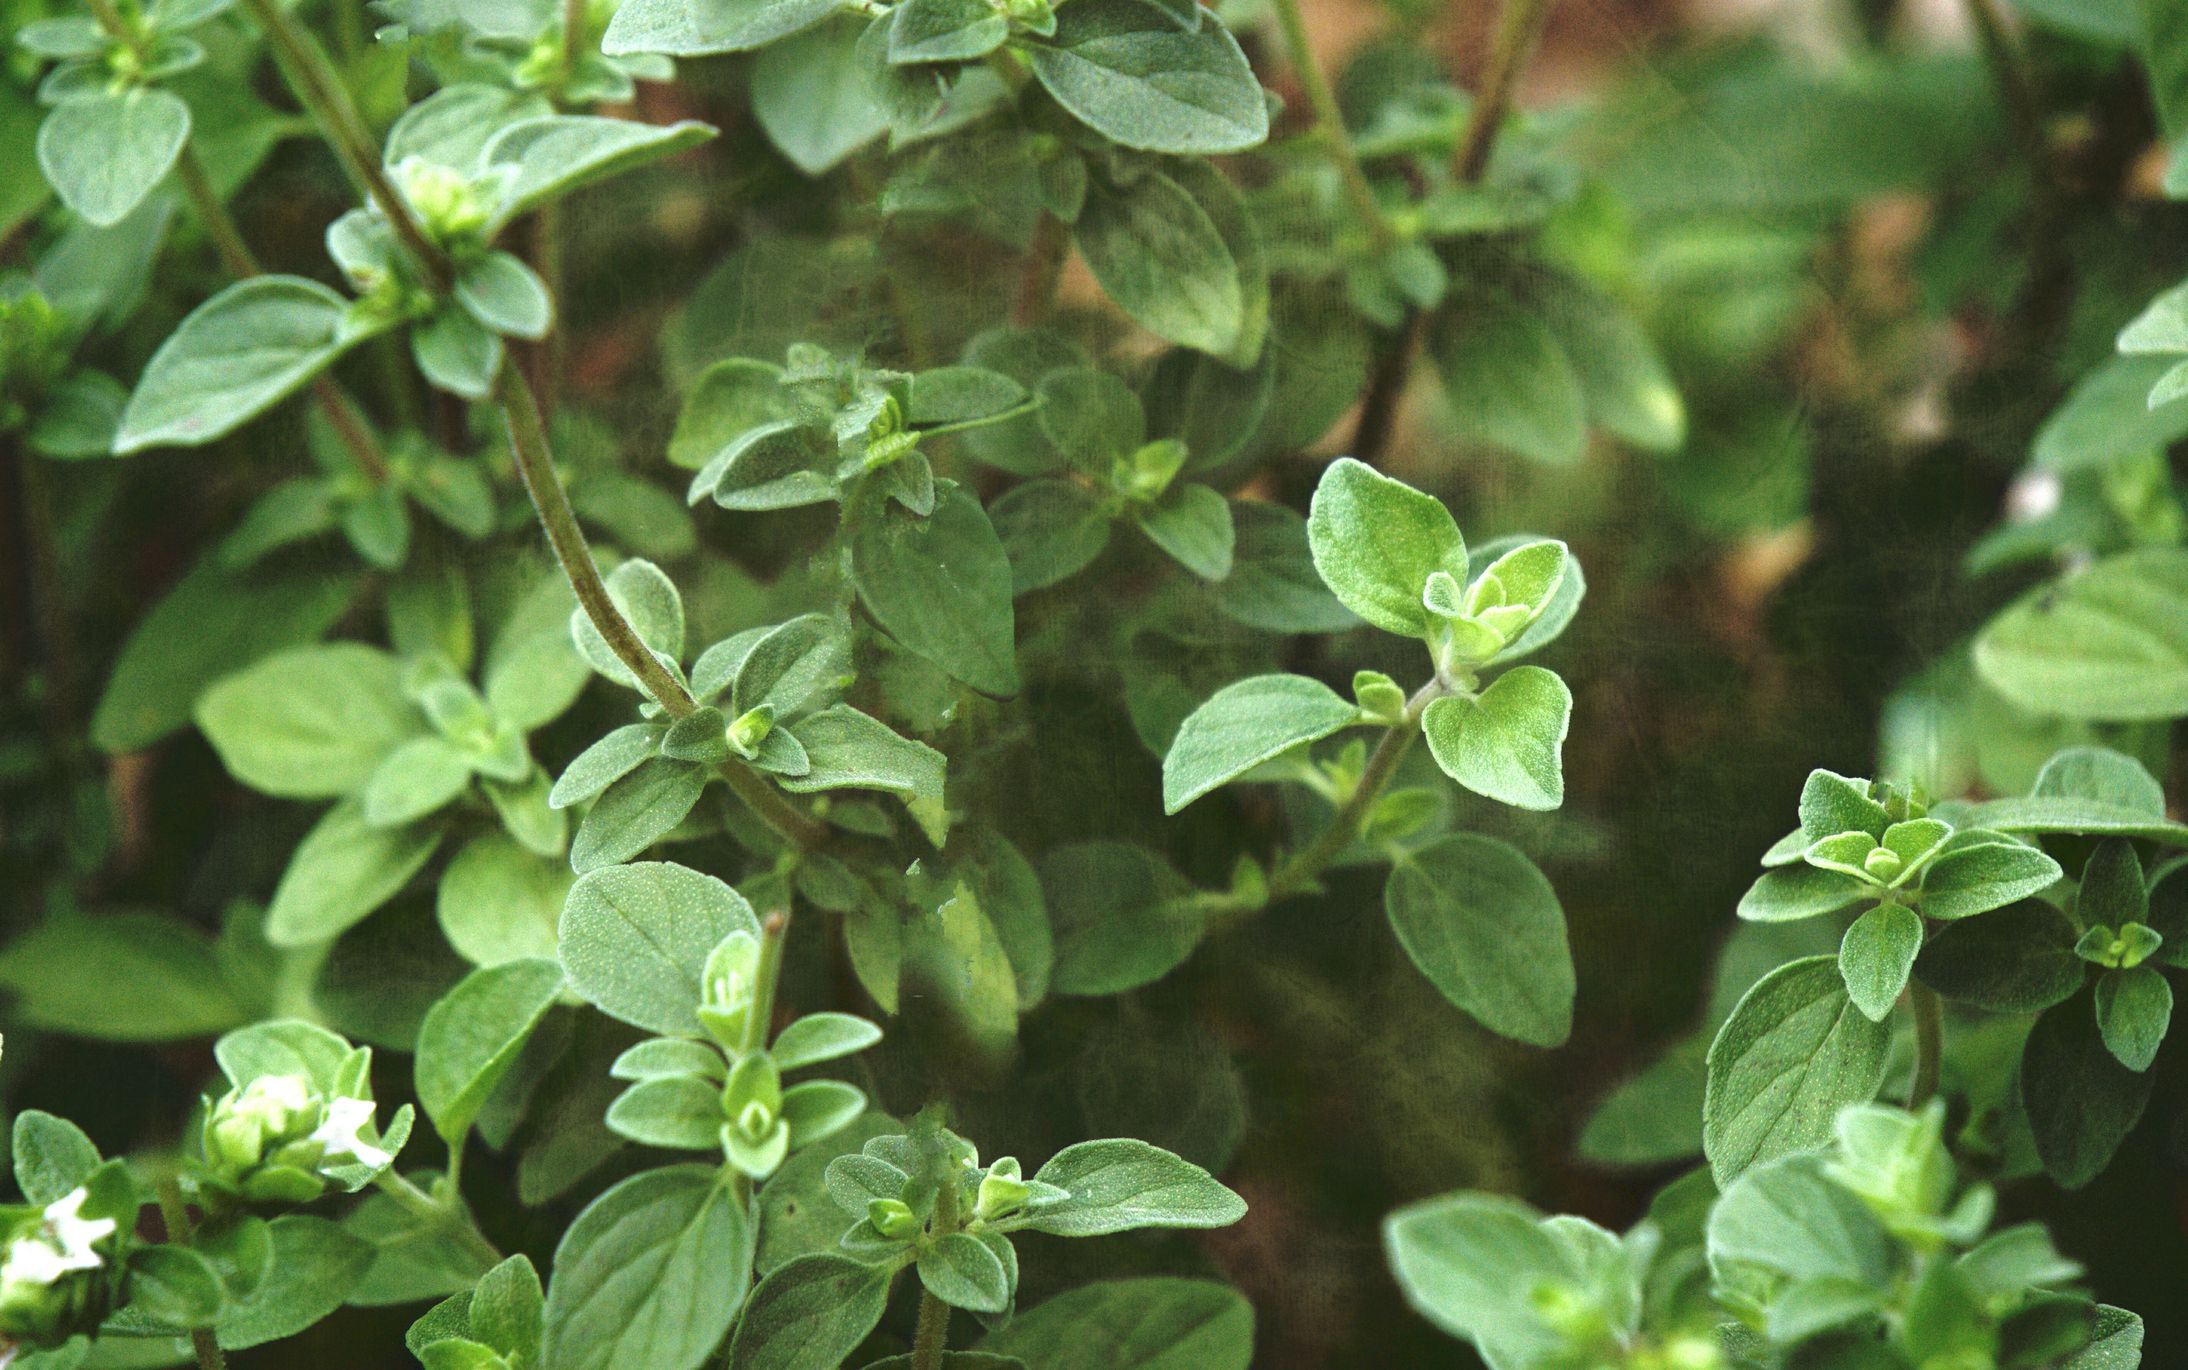 19 Plants That Repel Insects Basil Top Rust